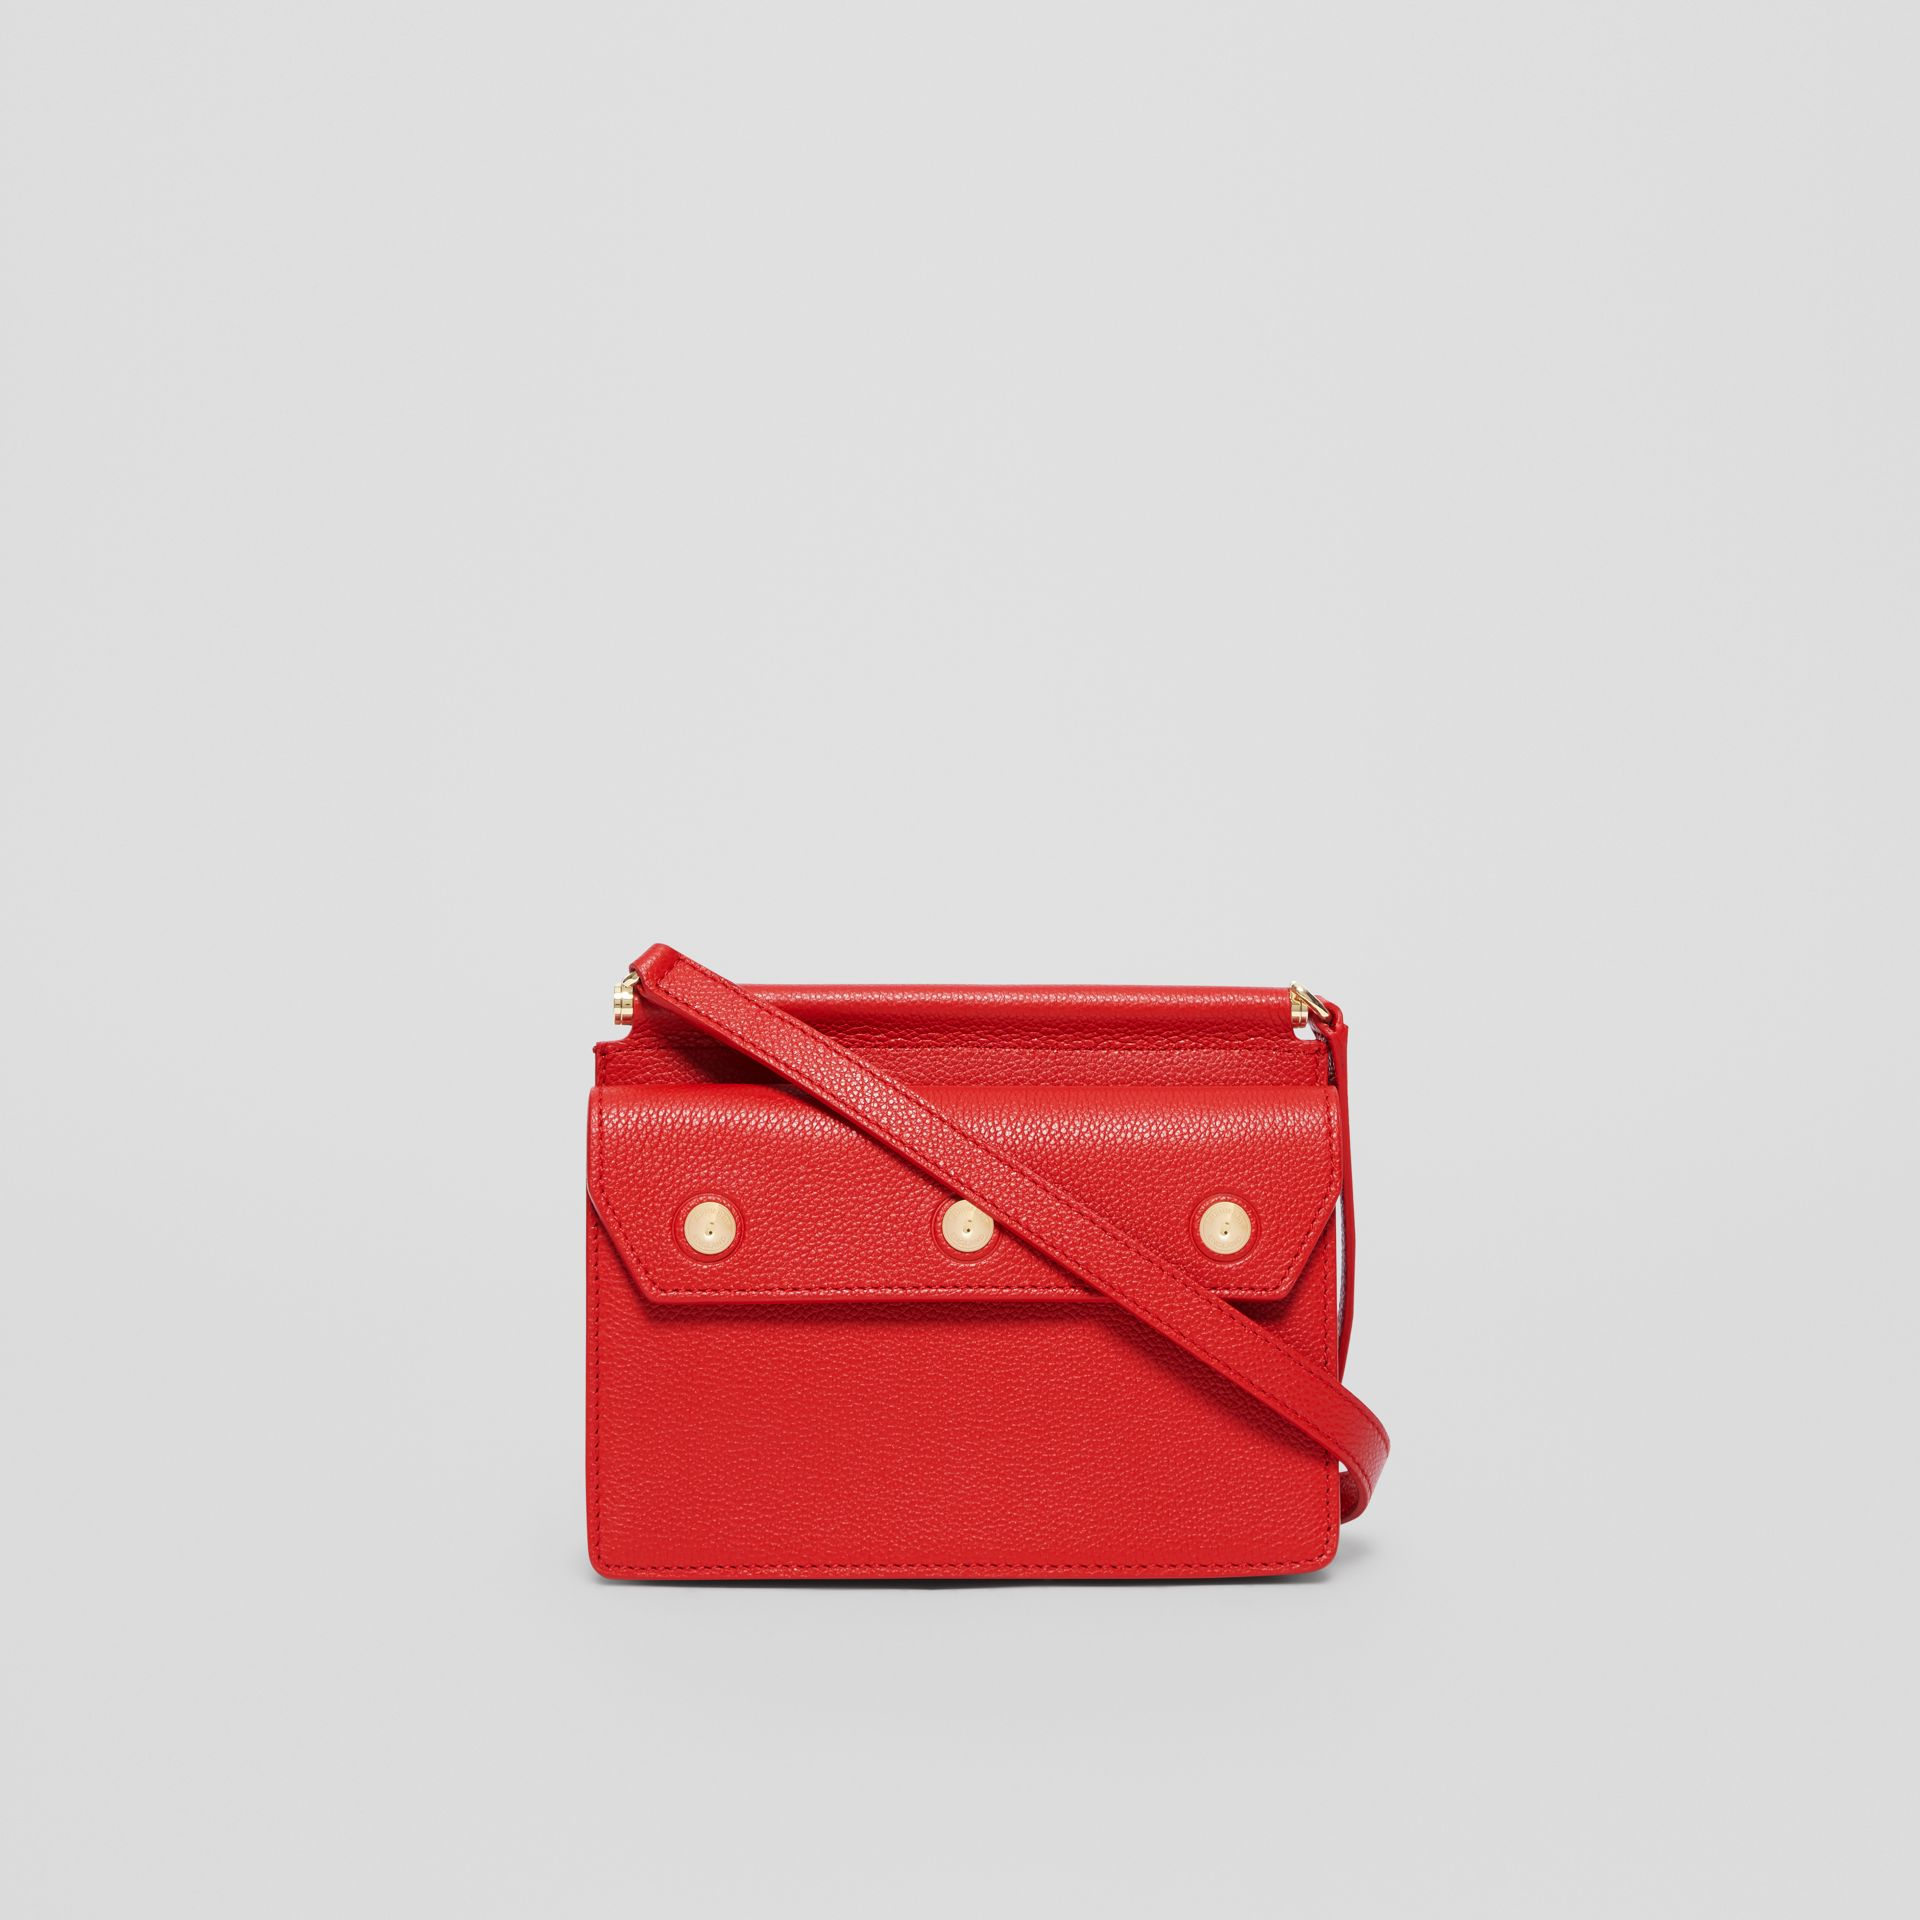 Mini Leather Title Bag with Pocket Detail in Bright Military Red - Women | Burberry - gallery image 7